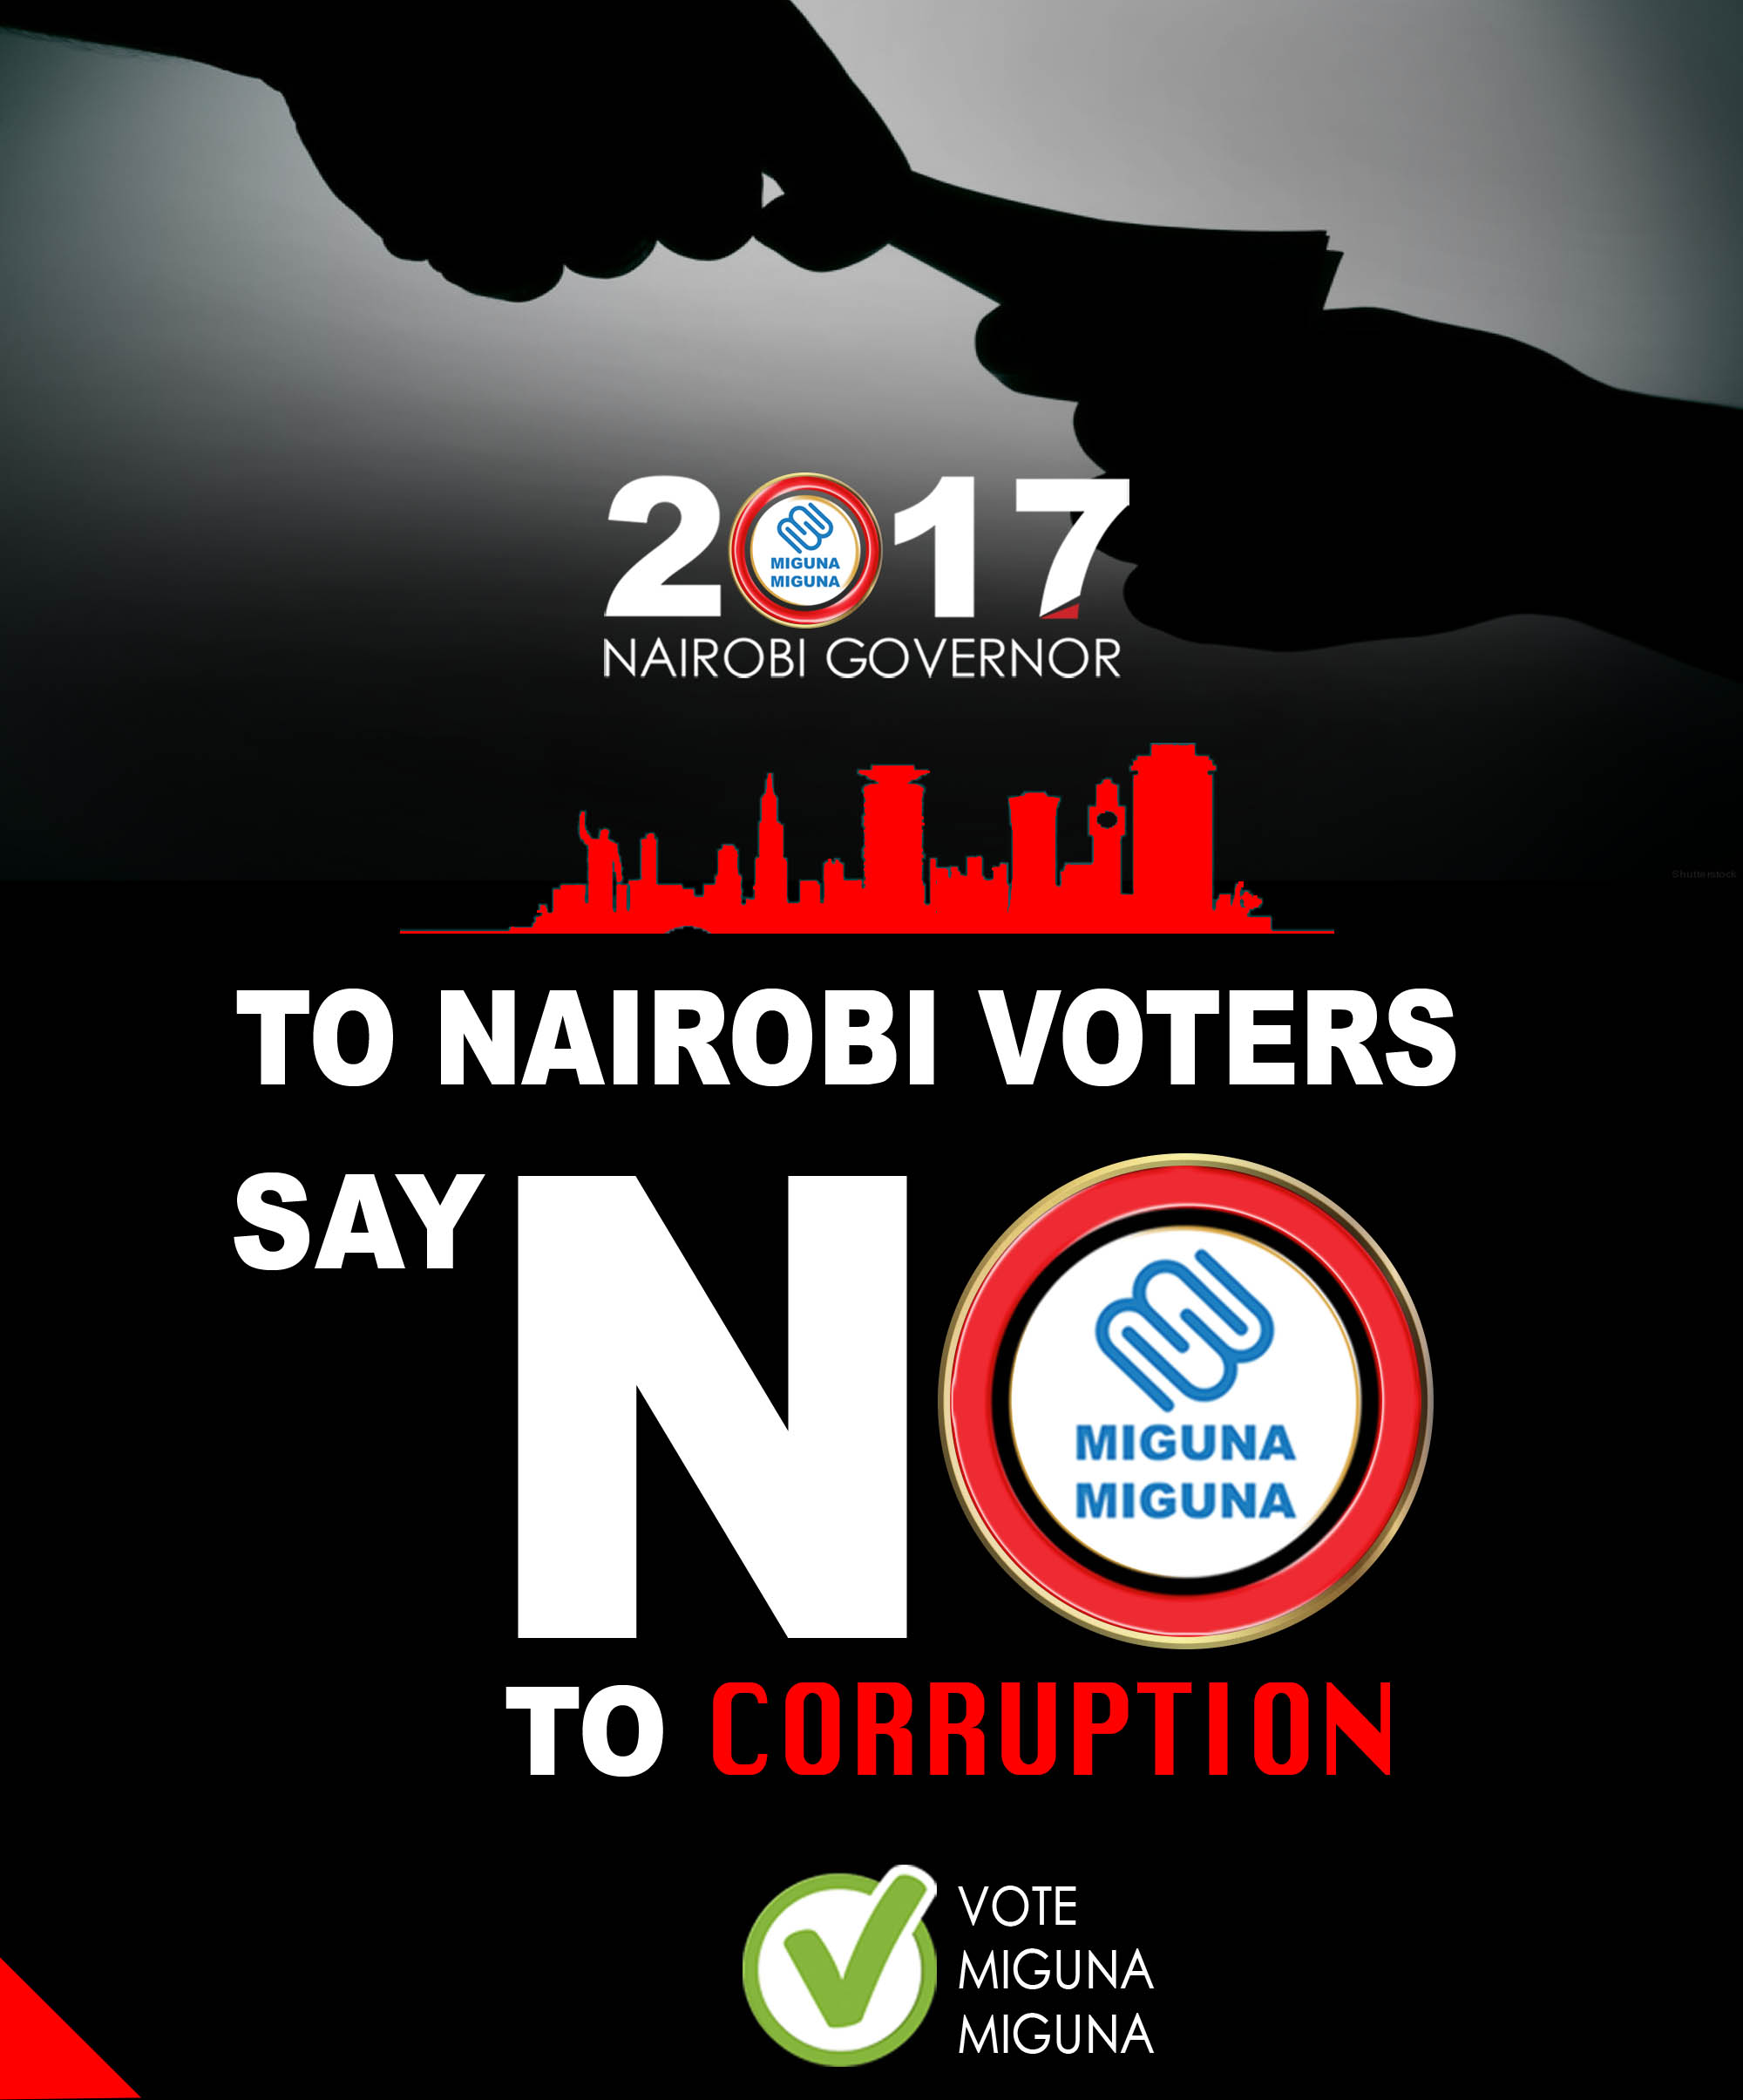 Say NO to corruption.